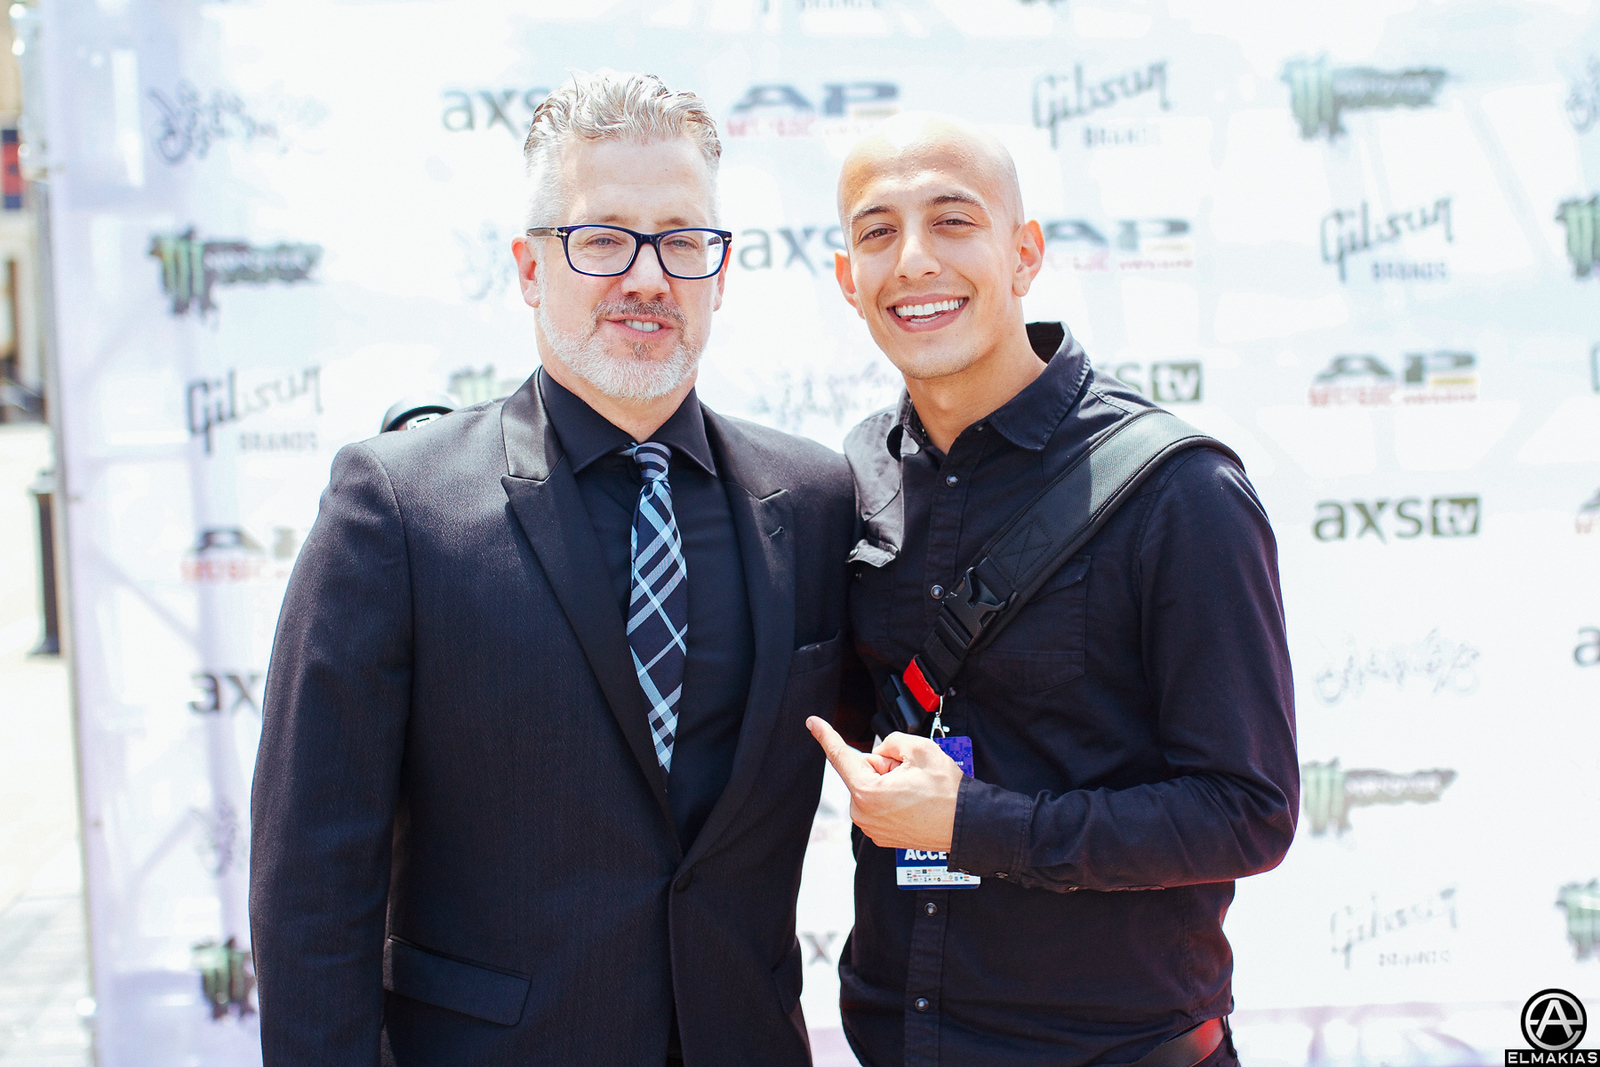 Mike Shea, CEO & Founder of Alternative Press & I on the red carpet at the Alternative Press Music Awards 2015